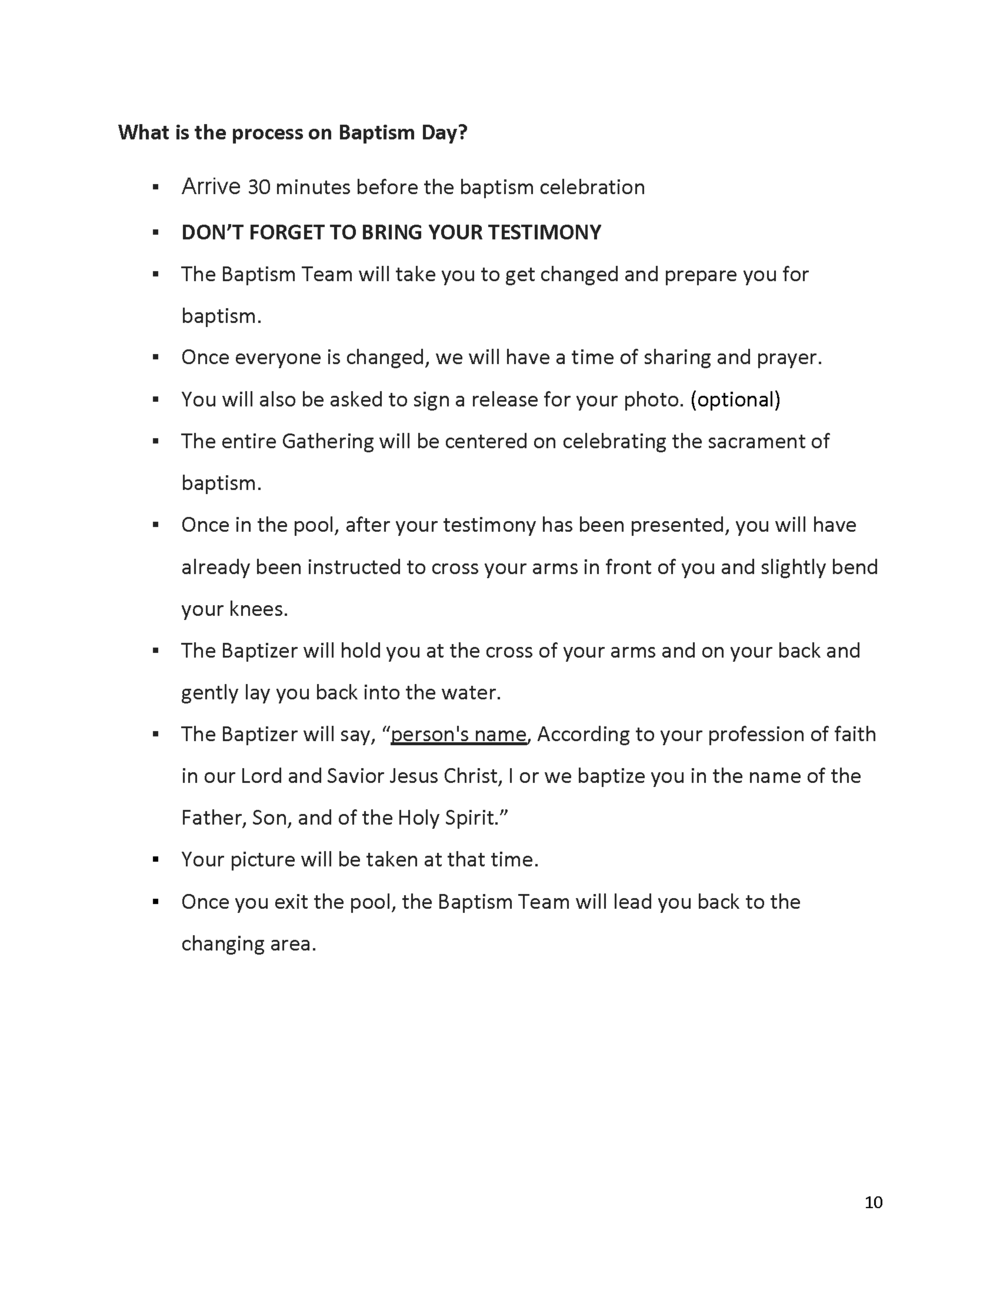 Baptism - Your Expression of Faith 10-28-18_Page_10.png